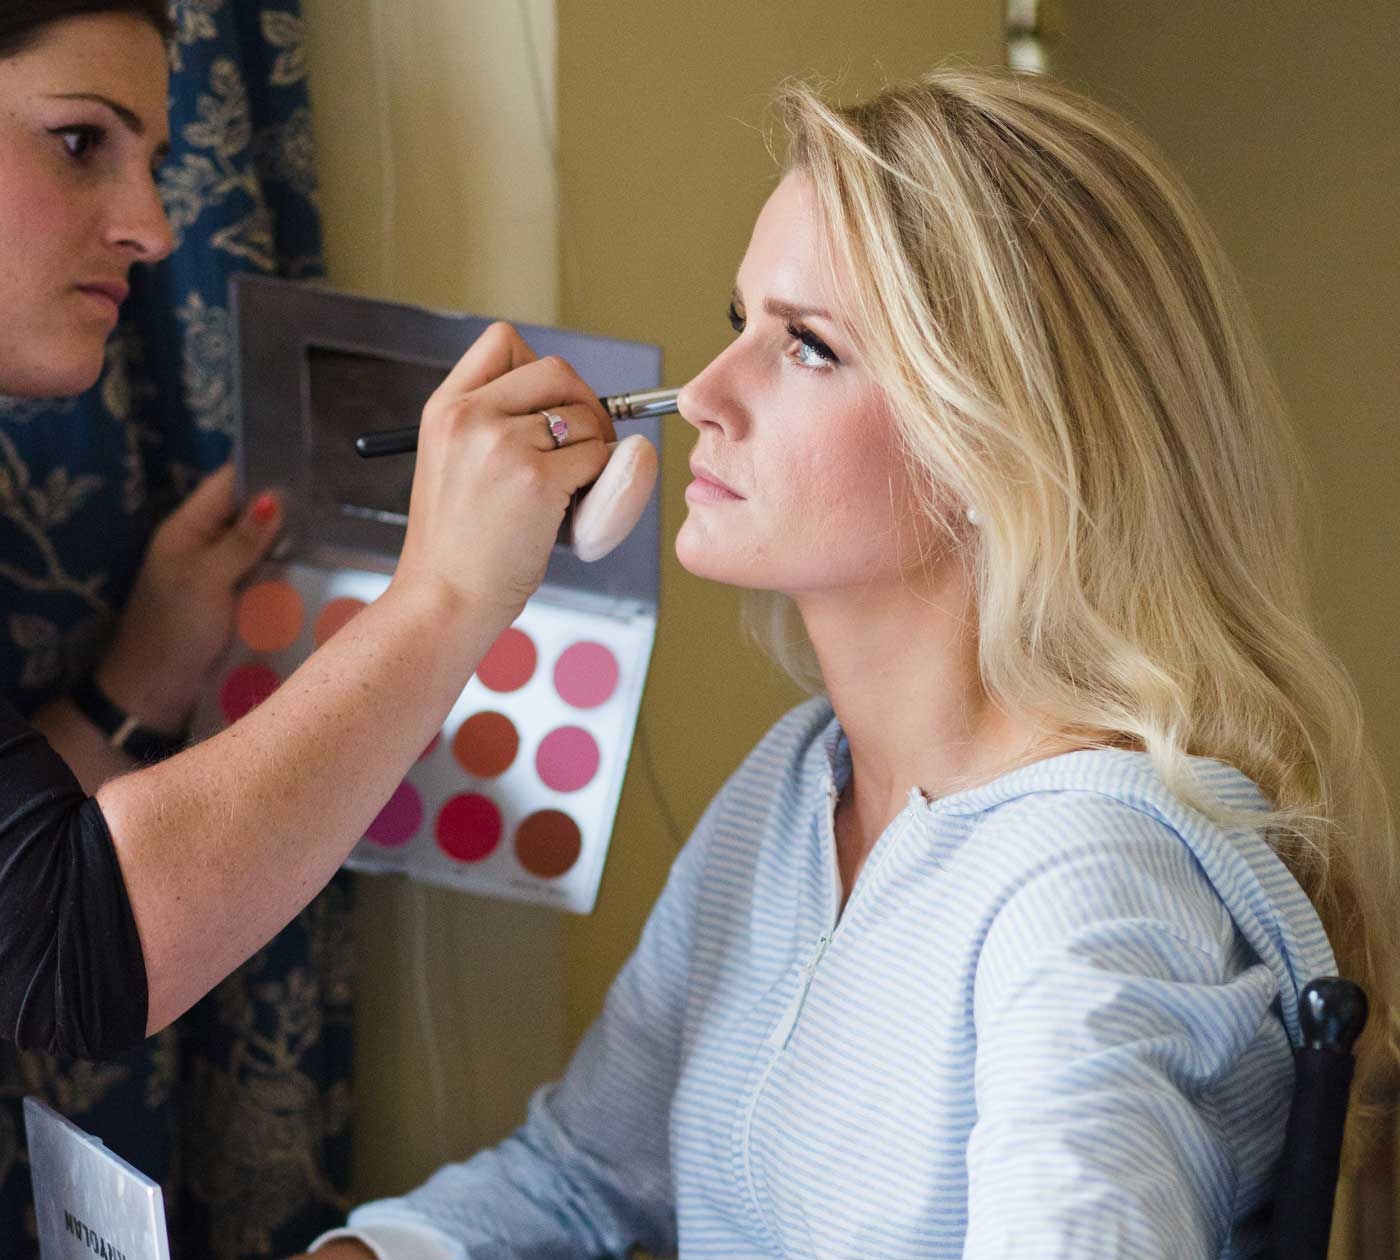 Makeup artist applying makeup to blonde